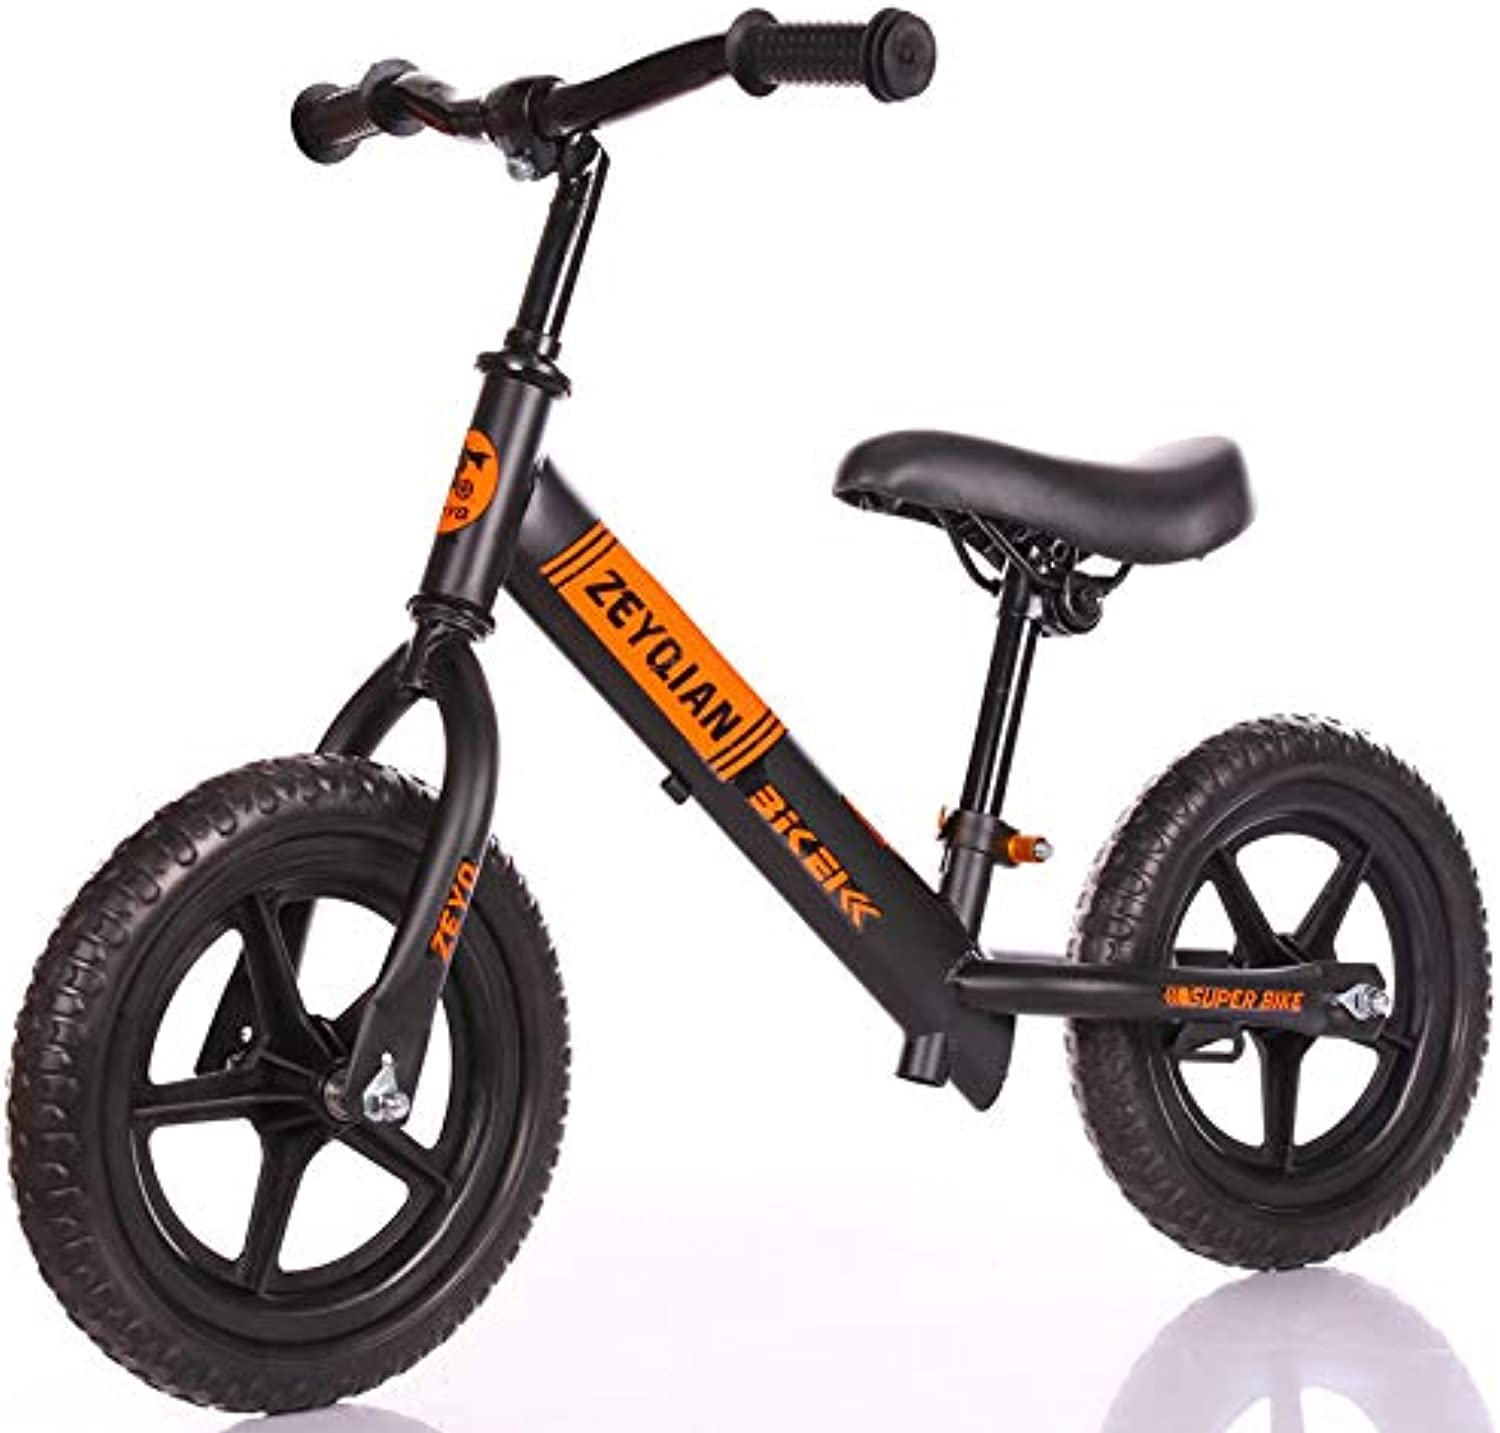 11 Kids' Competition Balance Bikes, Training Running Walking Bicycle Lightweight Wearresistant EVA solid tires